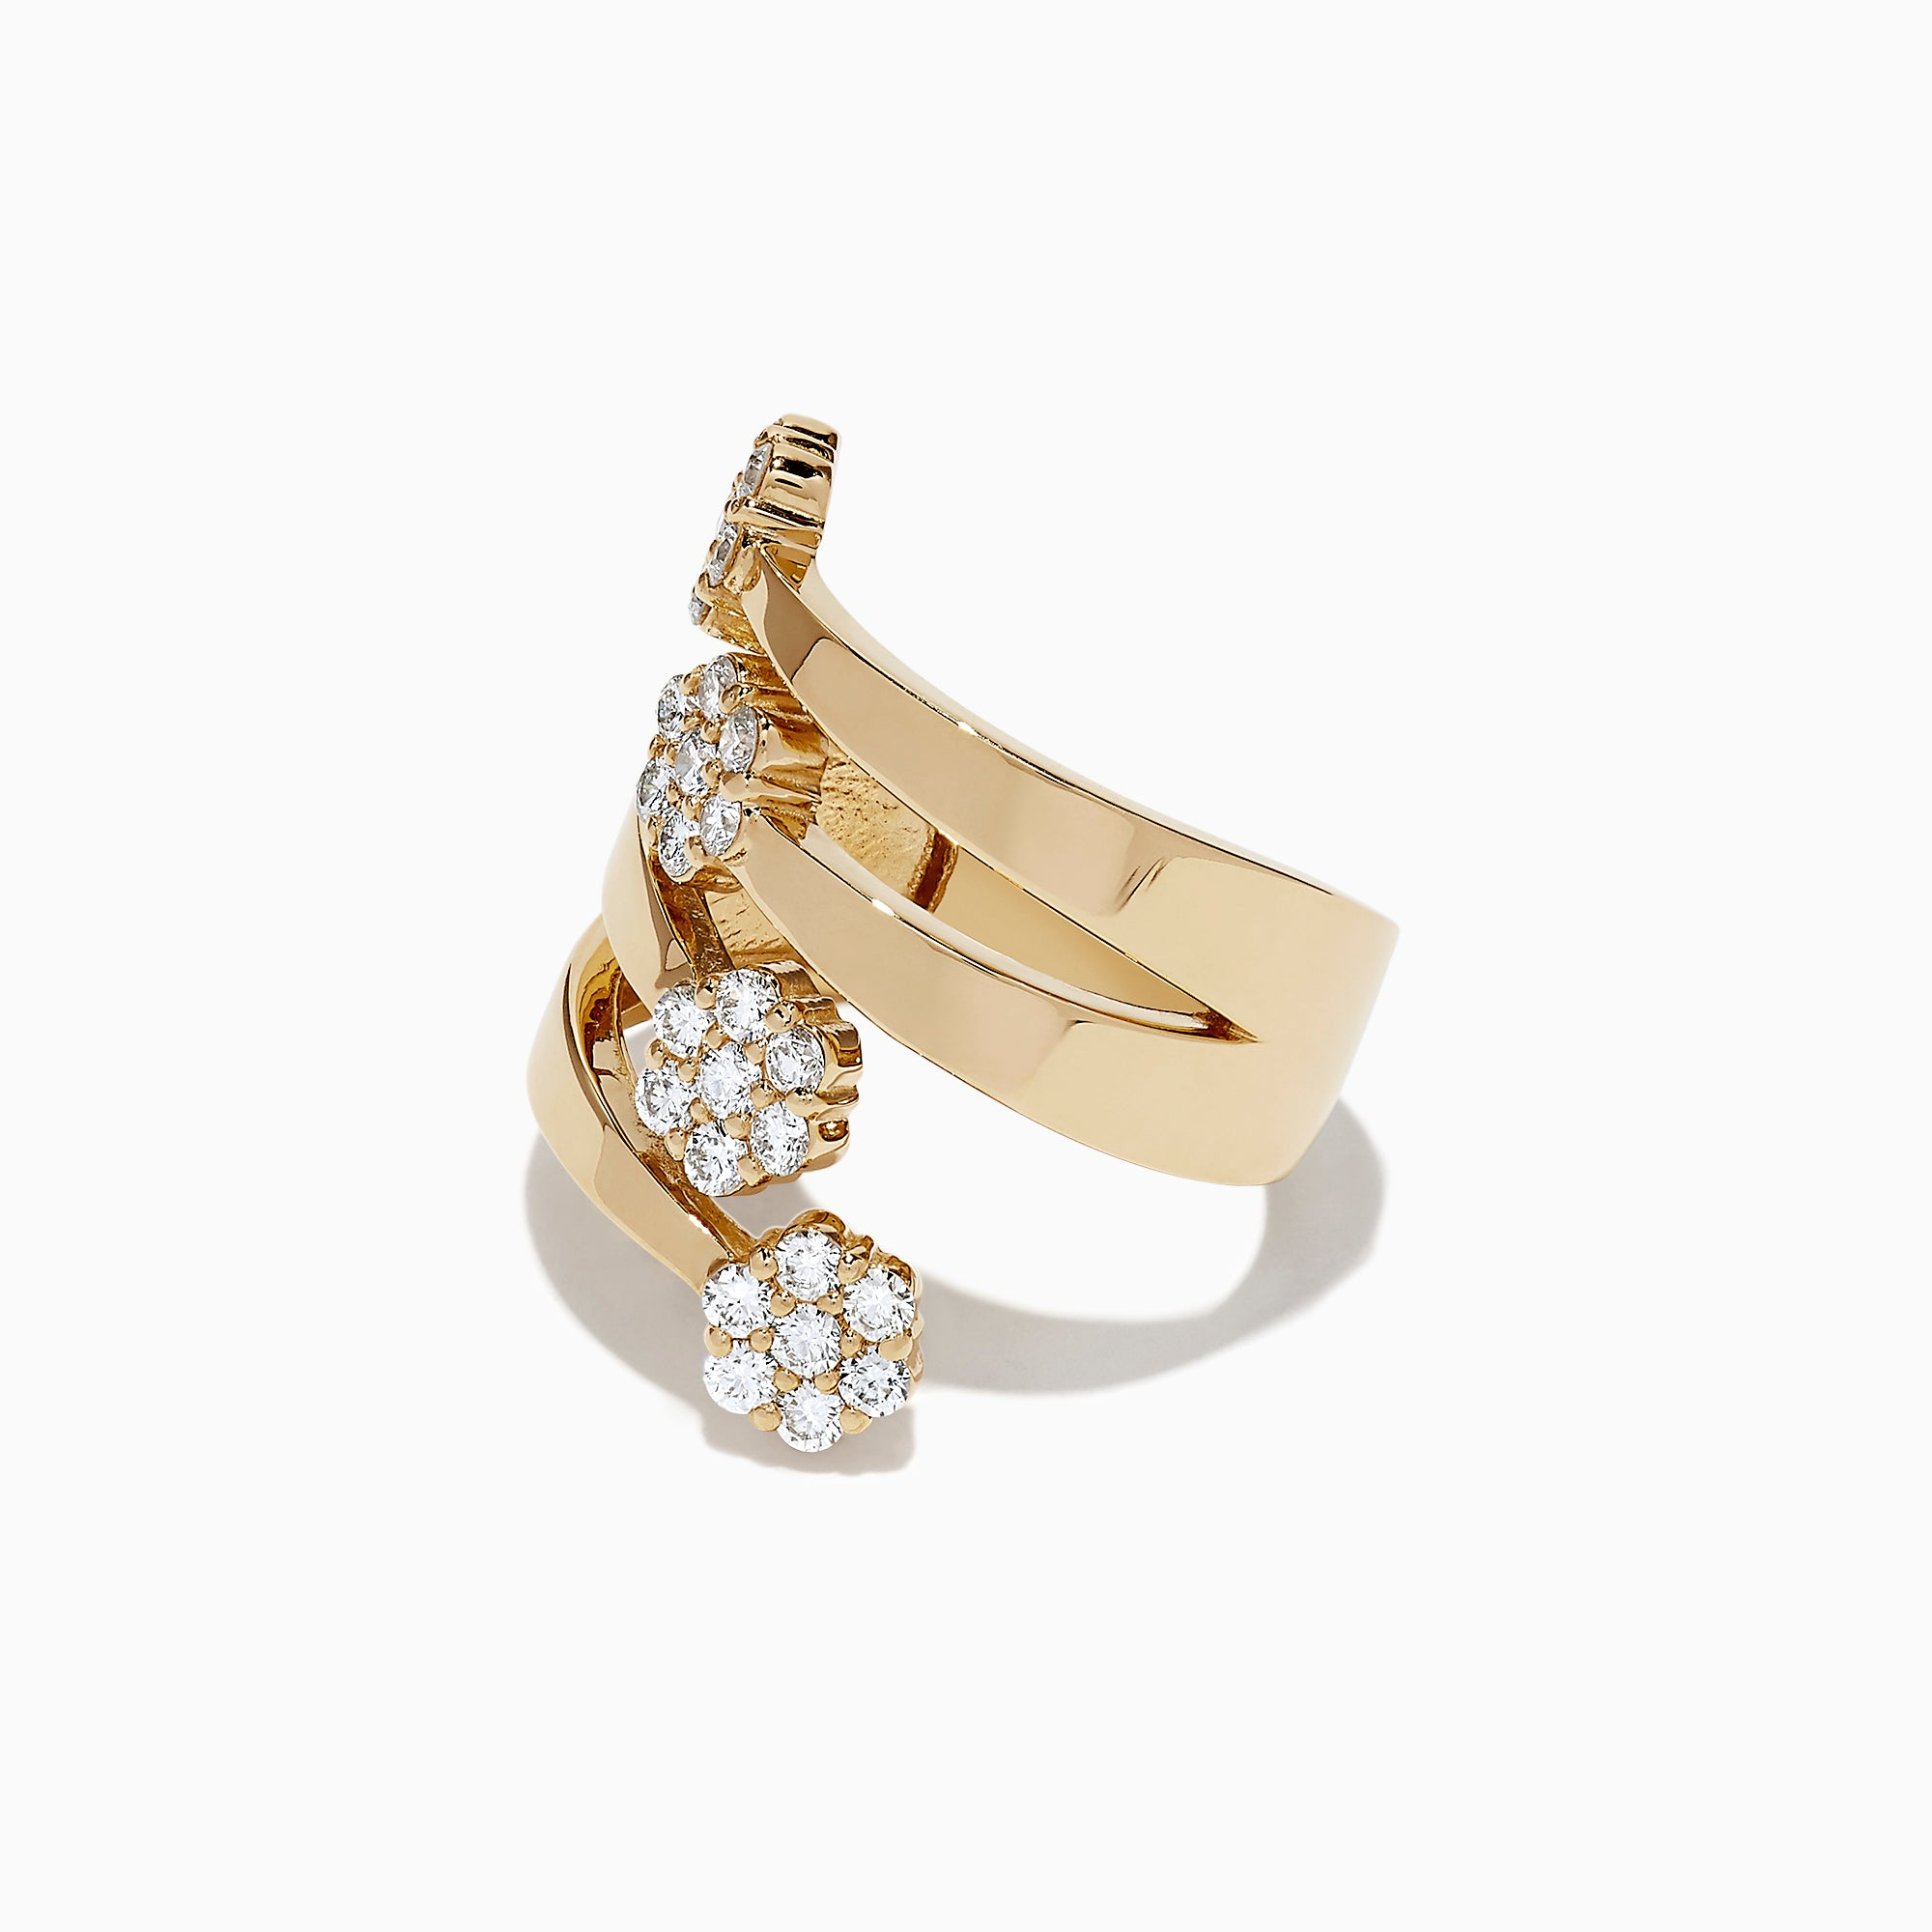 Effy D'Oro 14K Yellow Gold Diamond Clusters Ring, 0.82 TCW